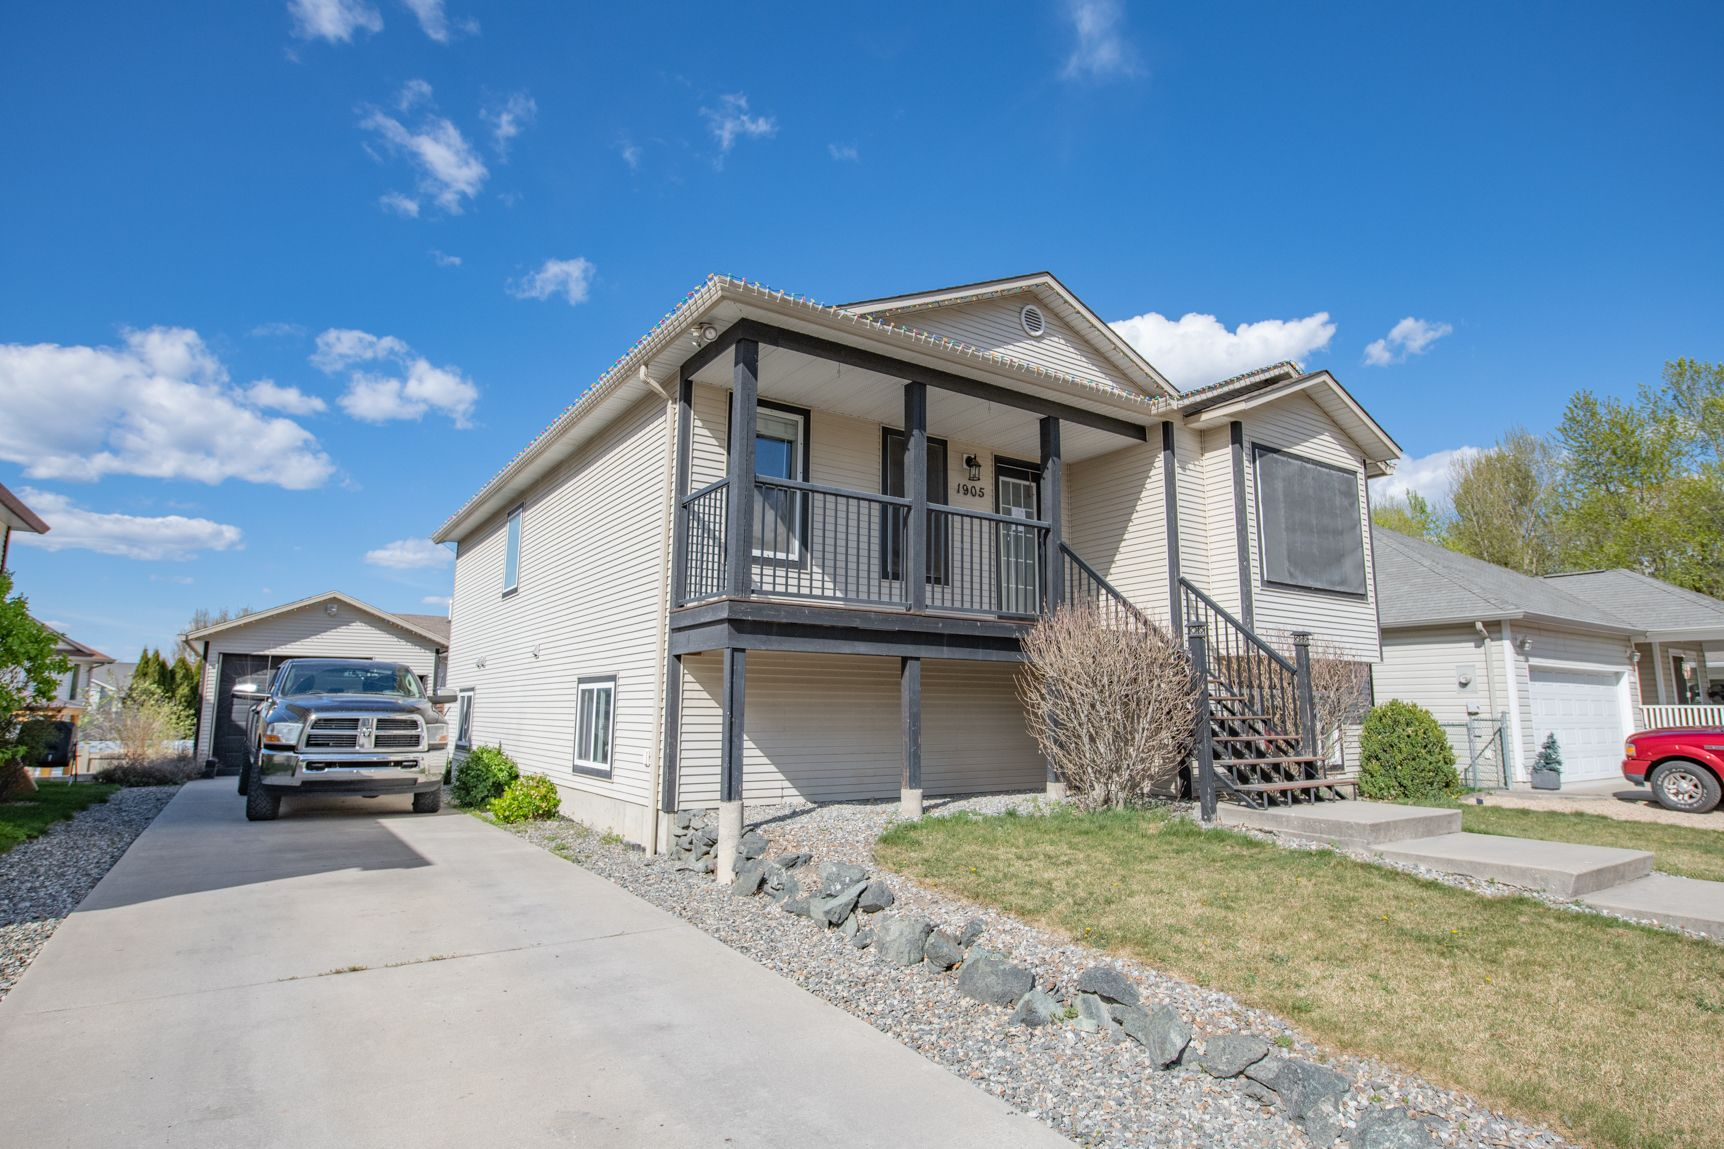 Main Photo: 1905 50 Avenue in Vernon: House for sale : MLS®# 10230688